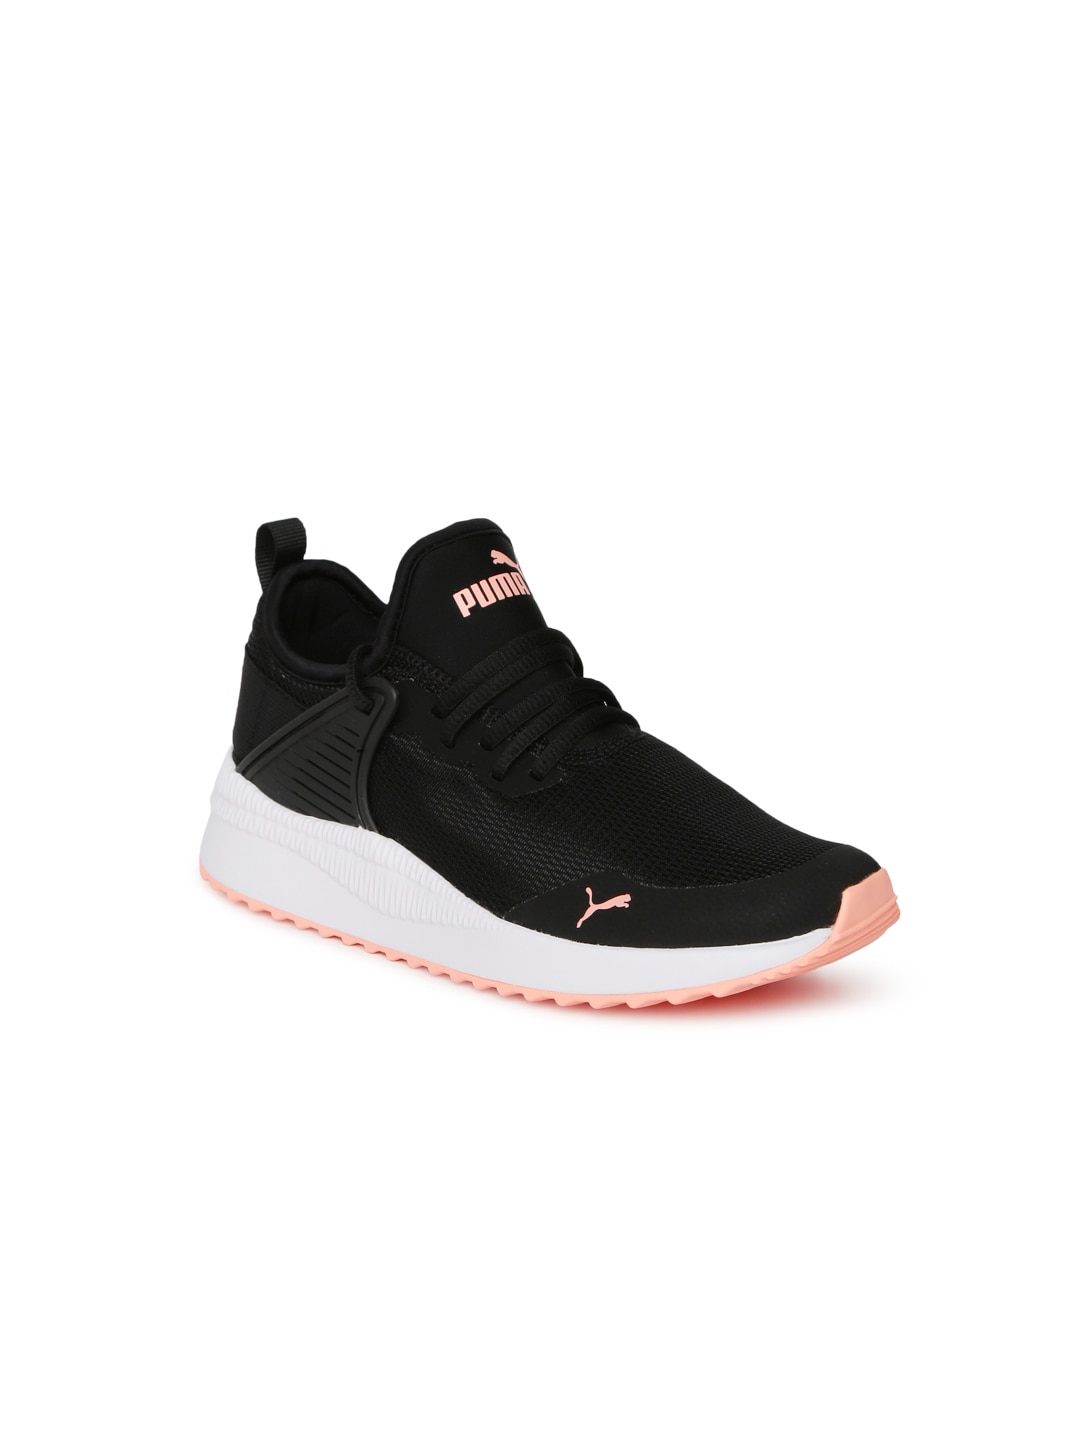 online retailer 36c77 7a8e7 Puma Black Shoes - Buy Puma Black Shoes Online in India